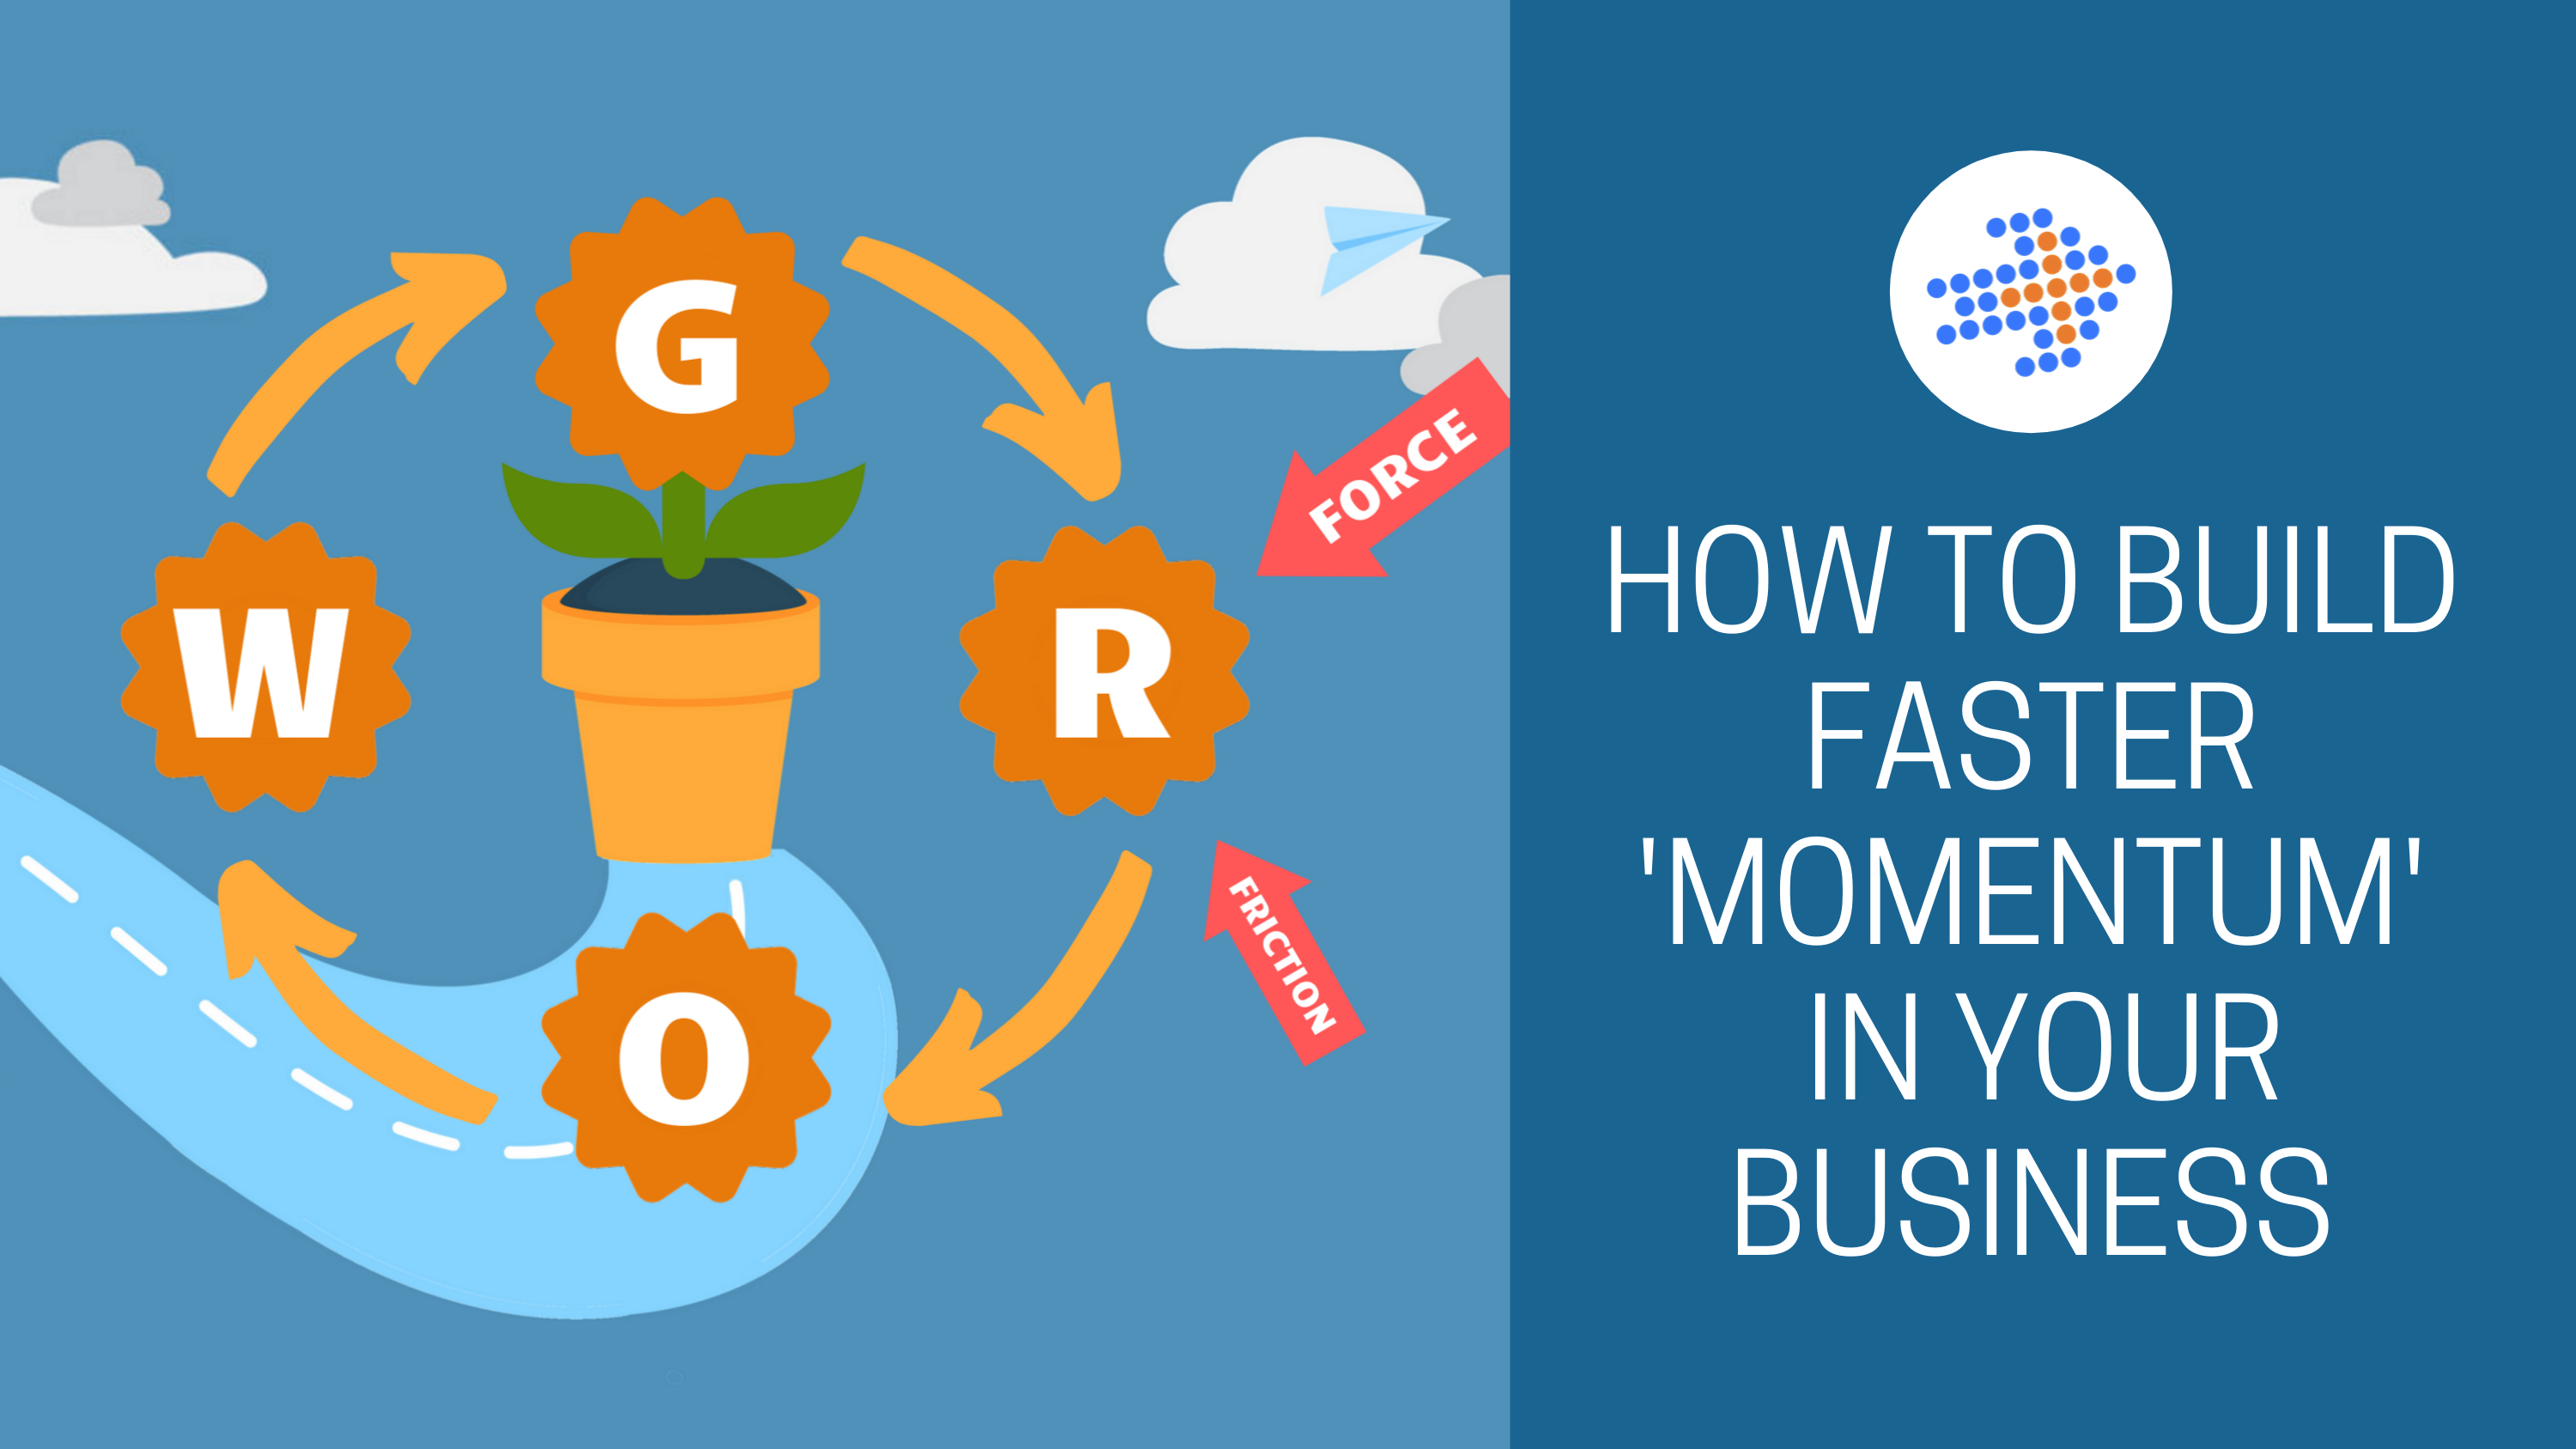 HOW TO BUILD FASTER MOMENTUM  IN YOUR BUSINESS